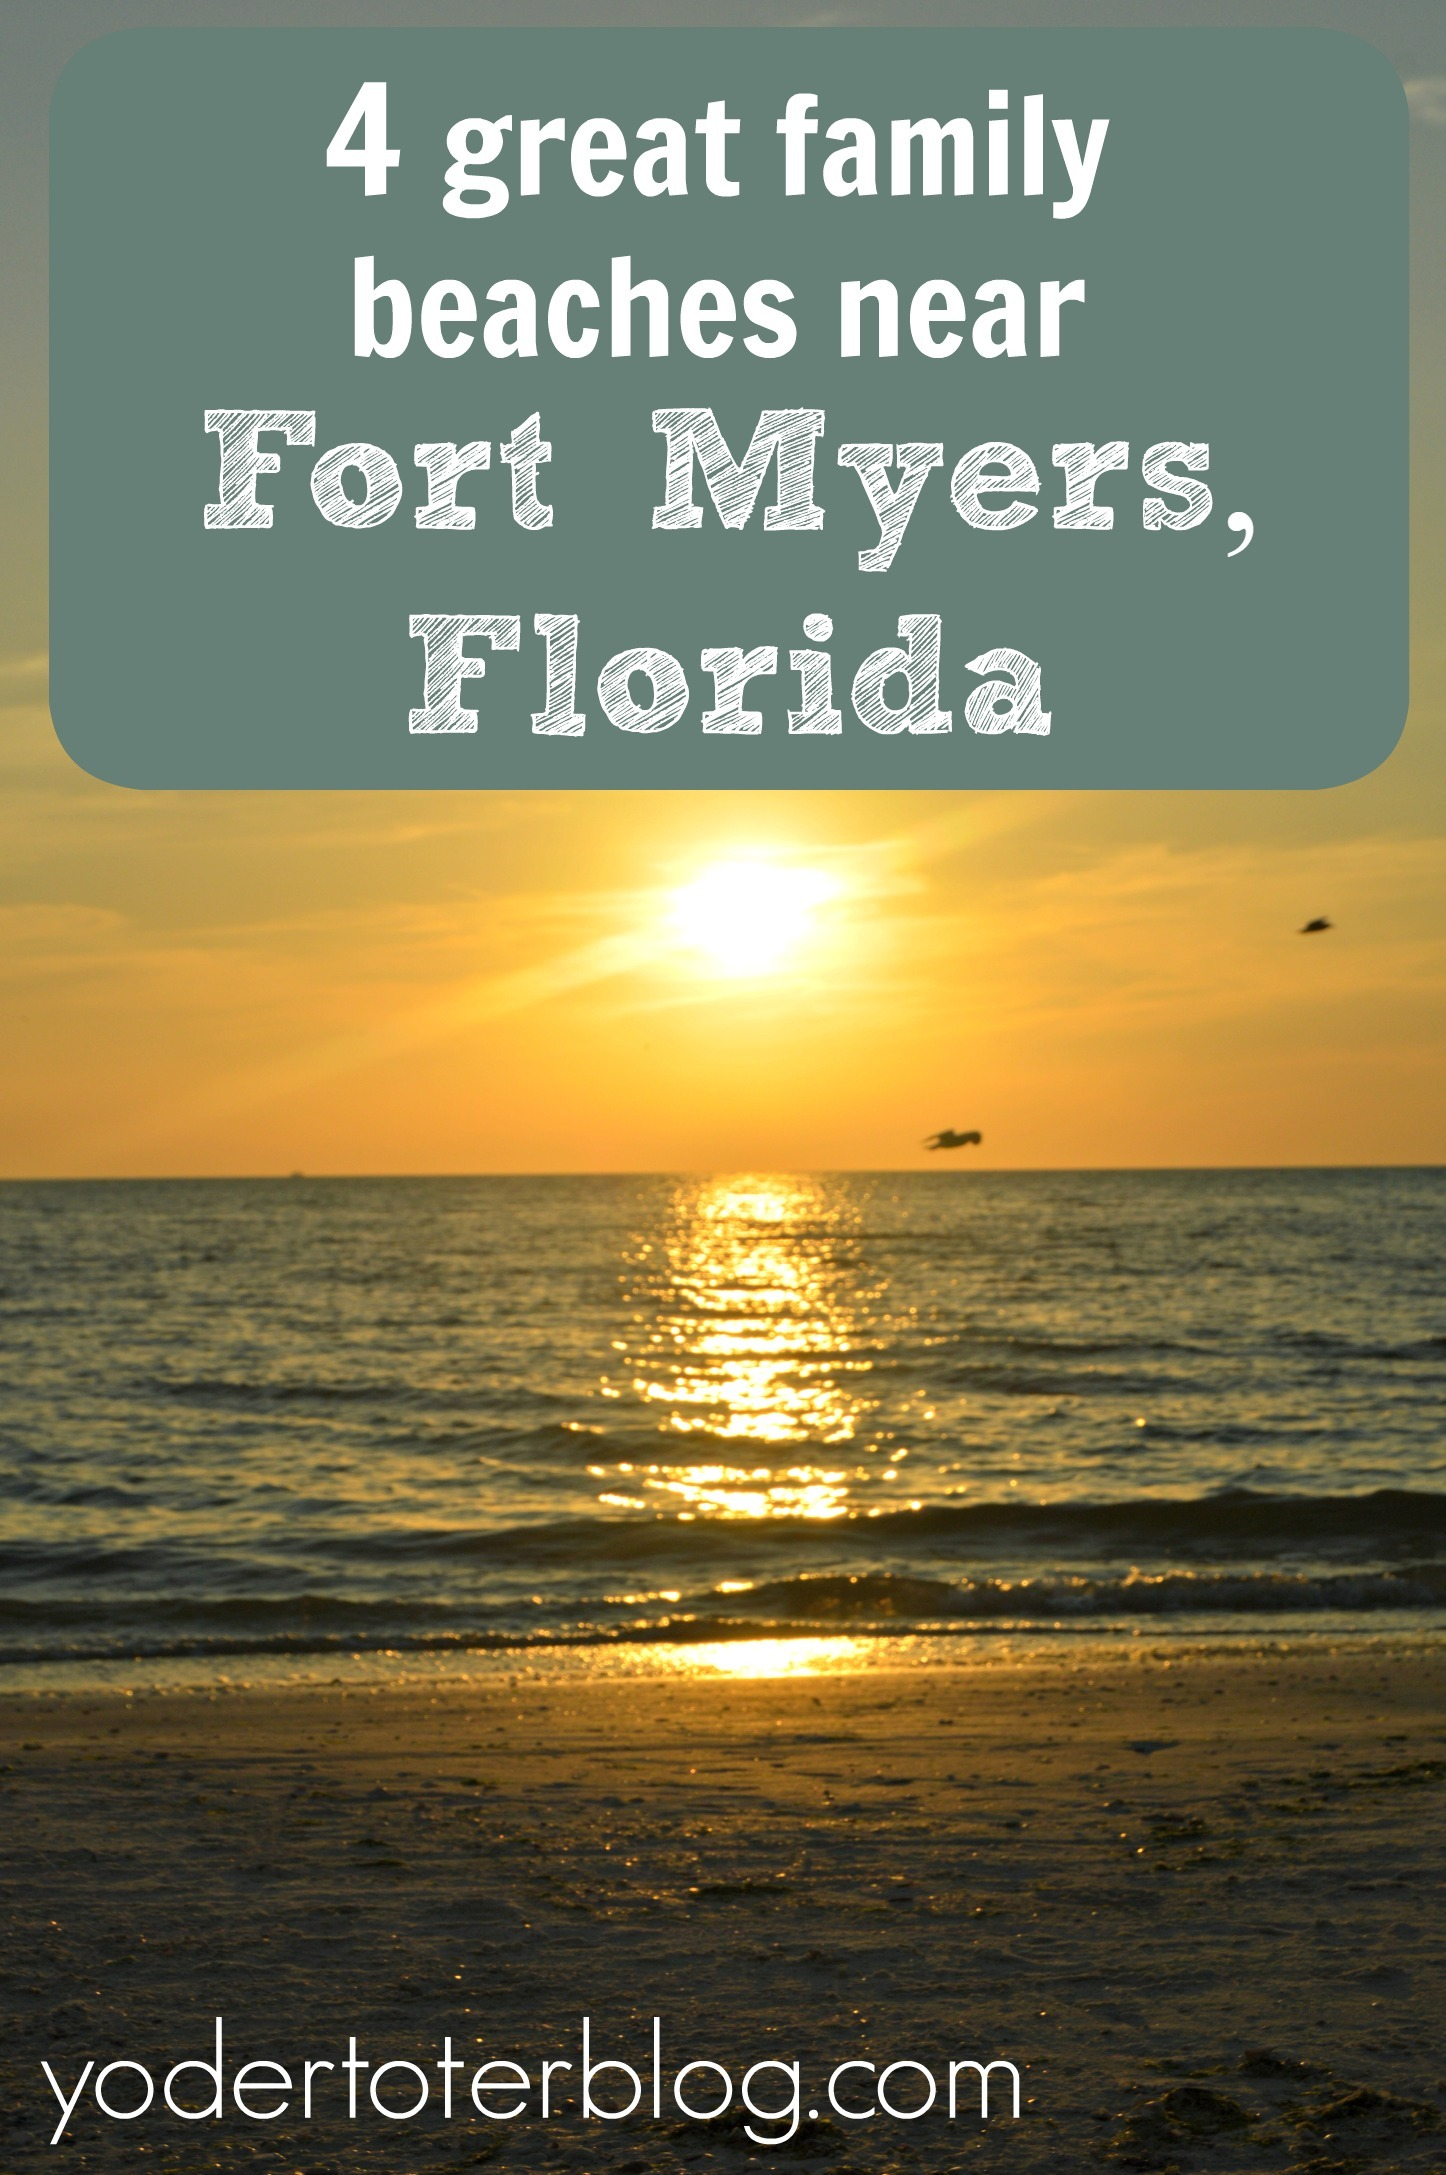 fort-myers-header